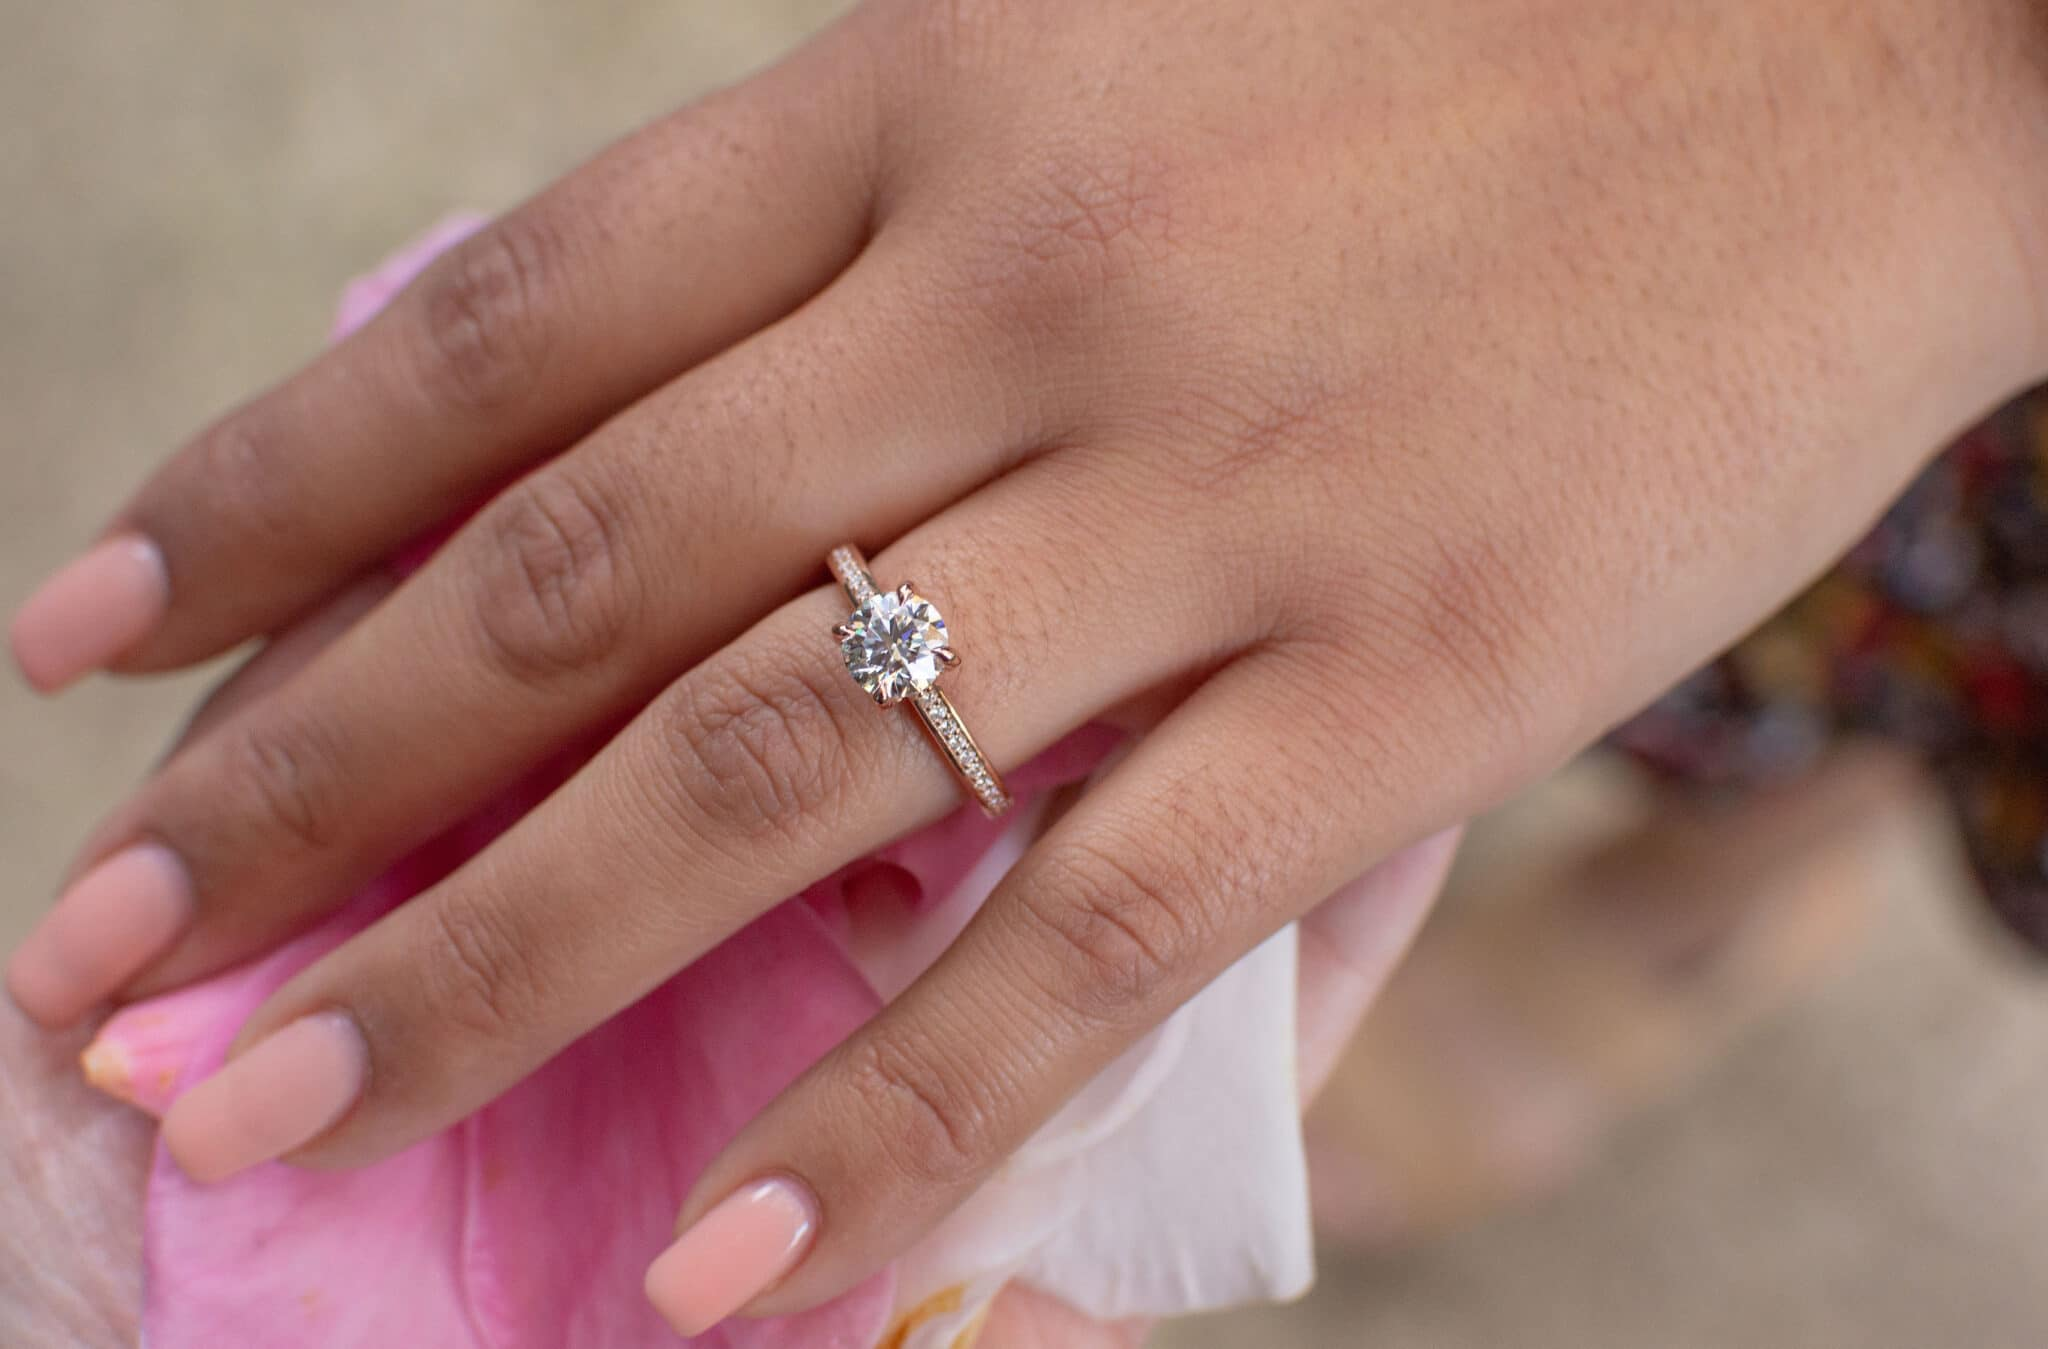 close up image of woman's hand with light pink colored nails and engagement ring on